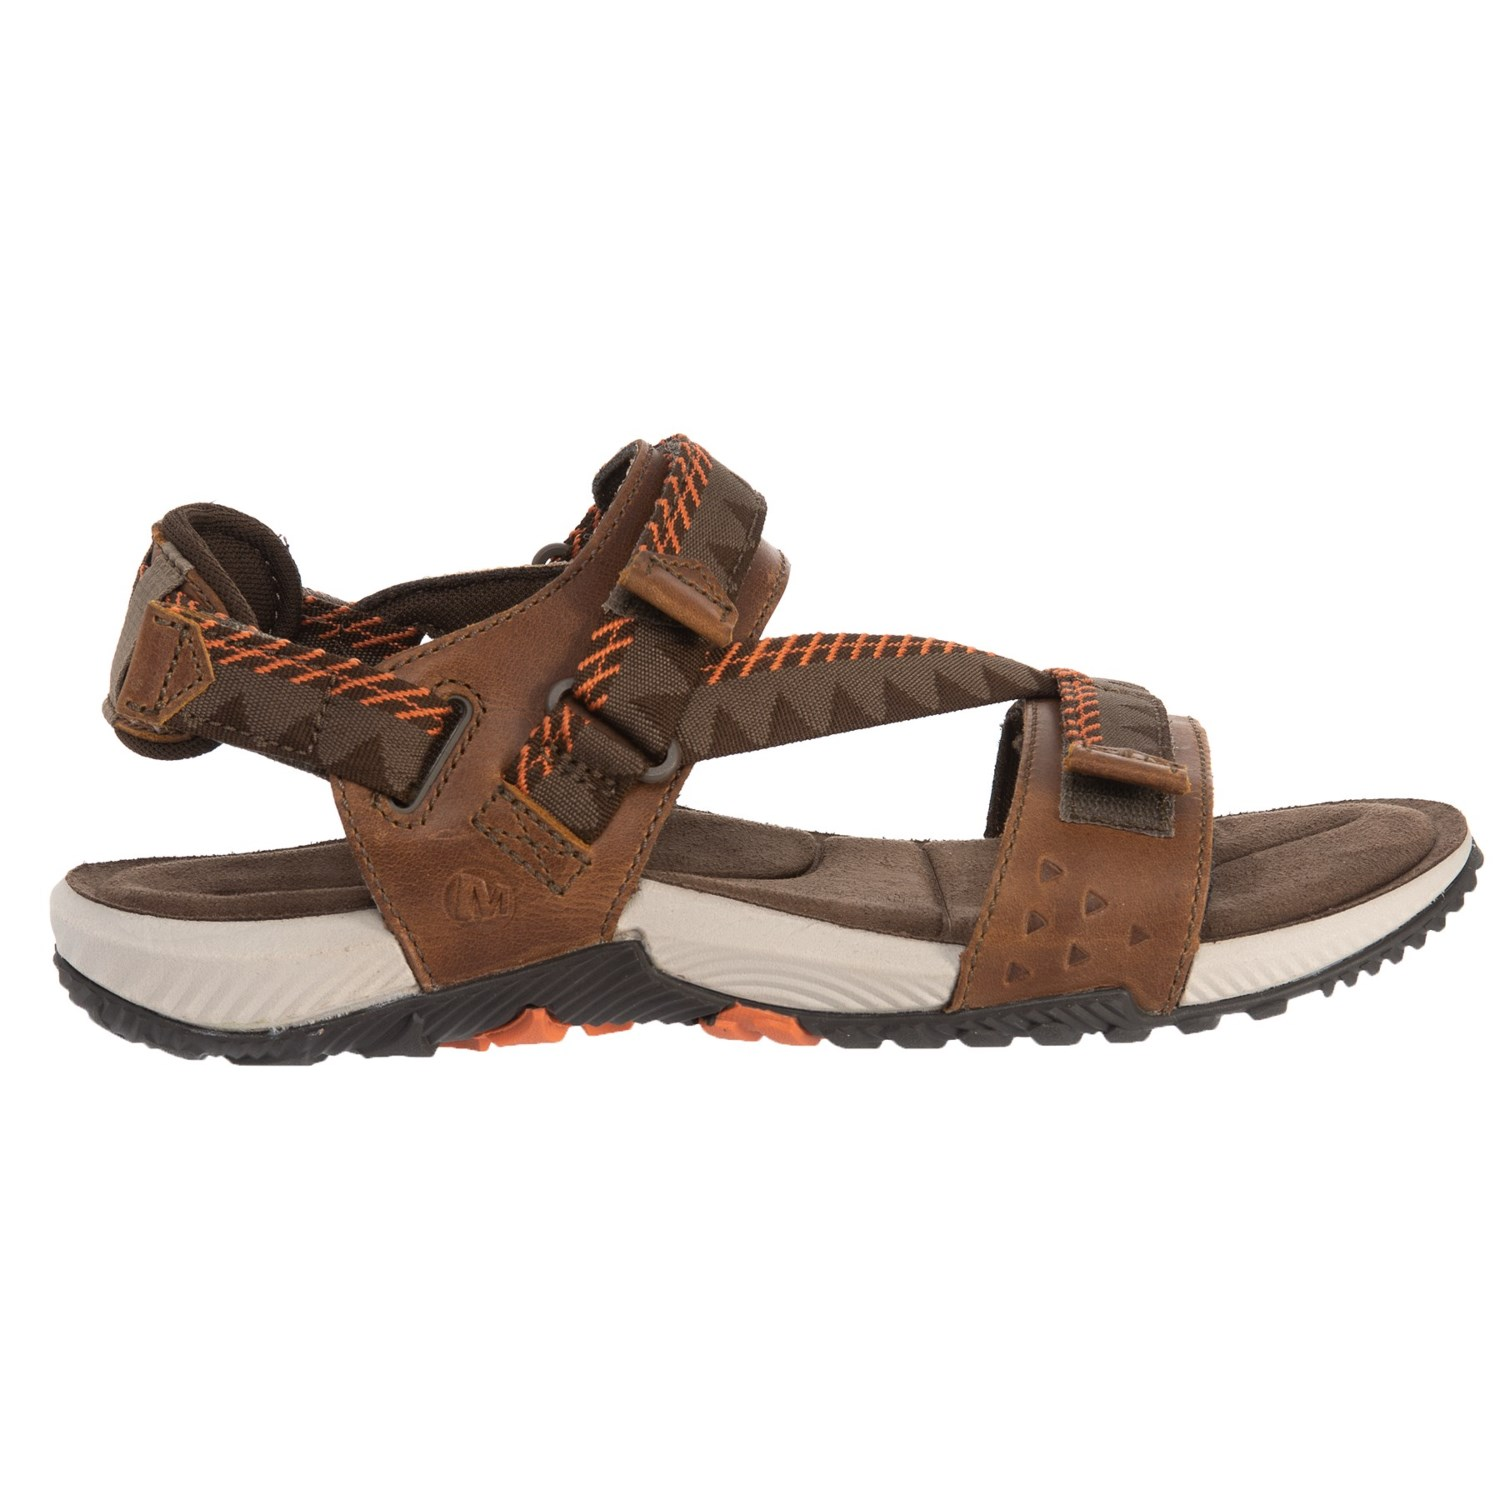 1320f5195efd Merrell Terrant Convertible Sport Sandals (For Men) - Save 61%